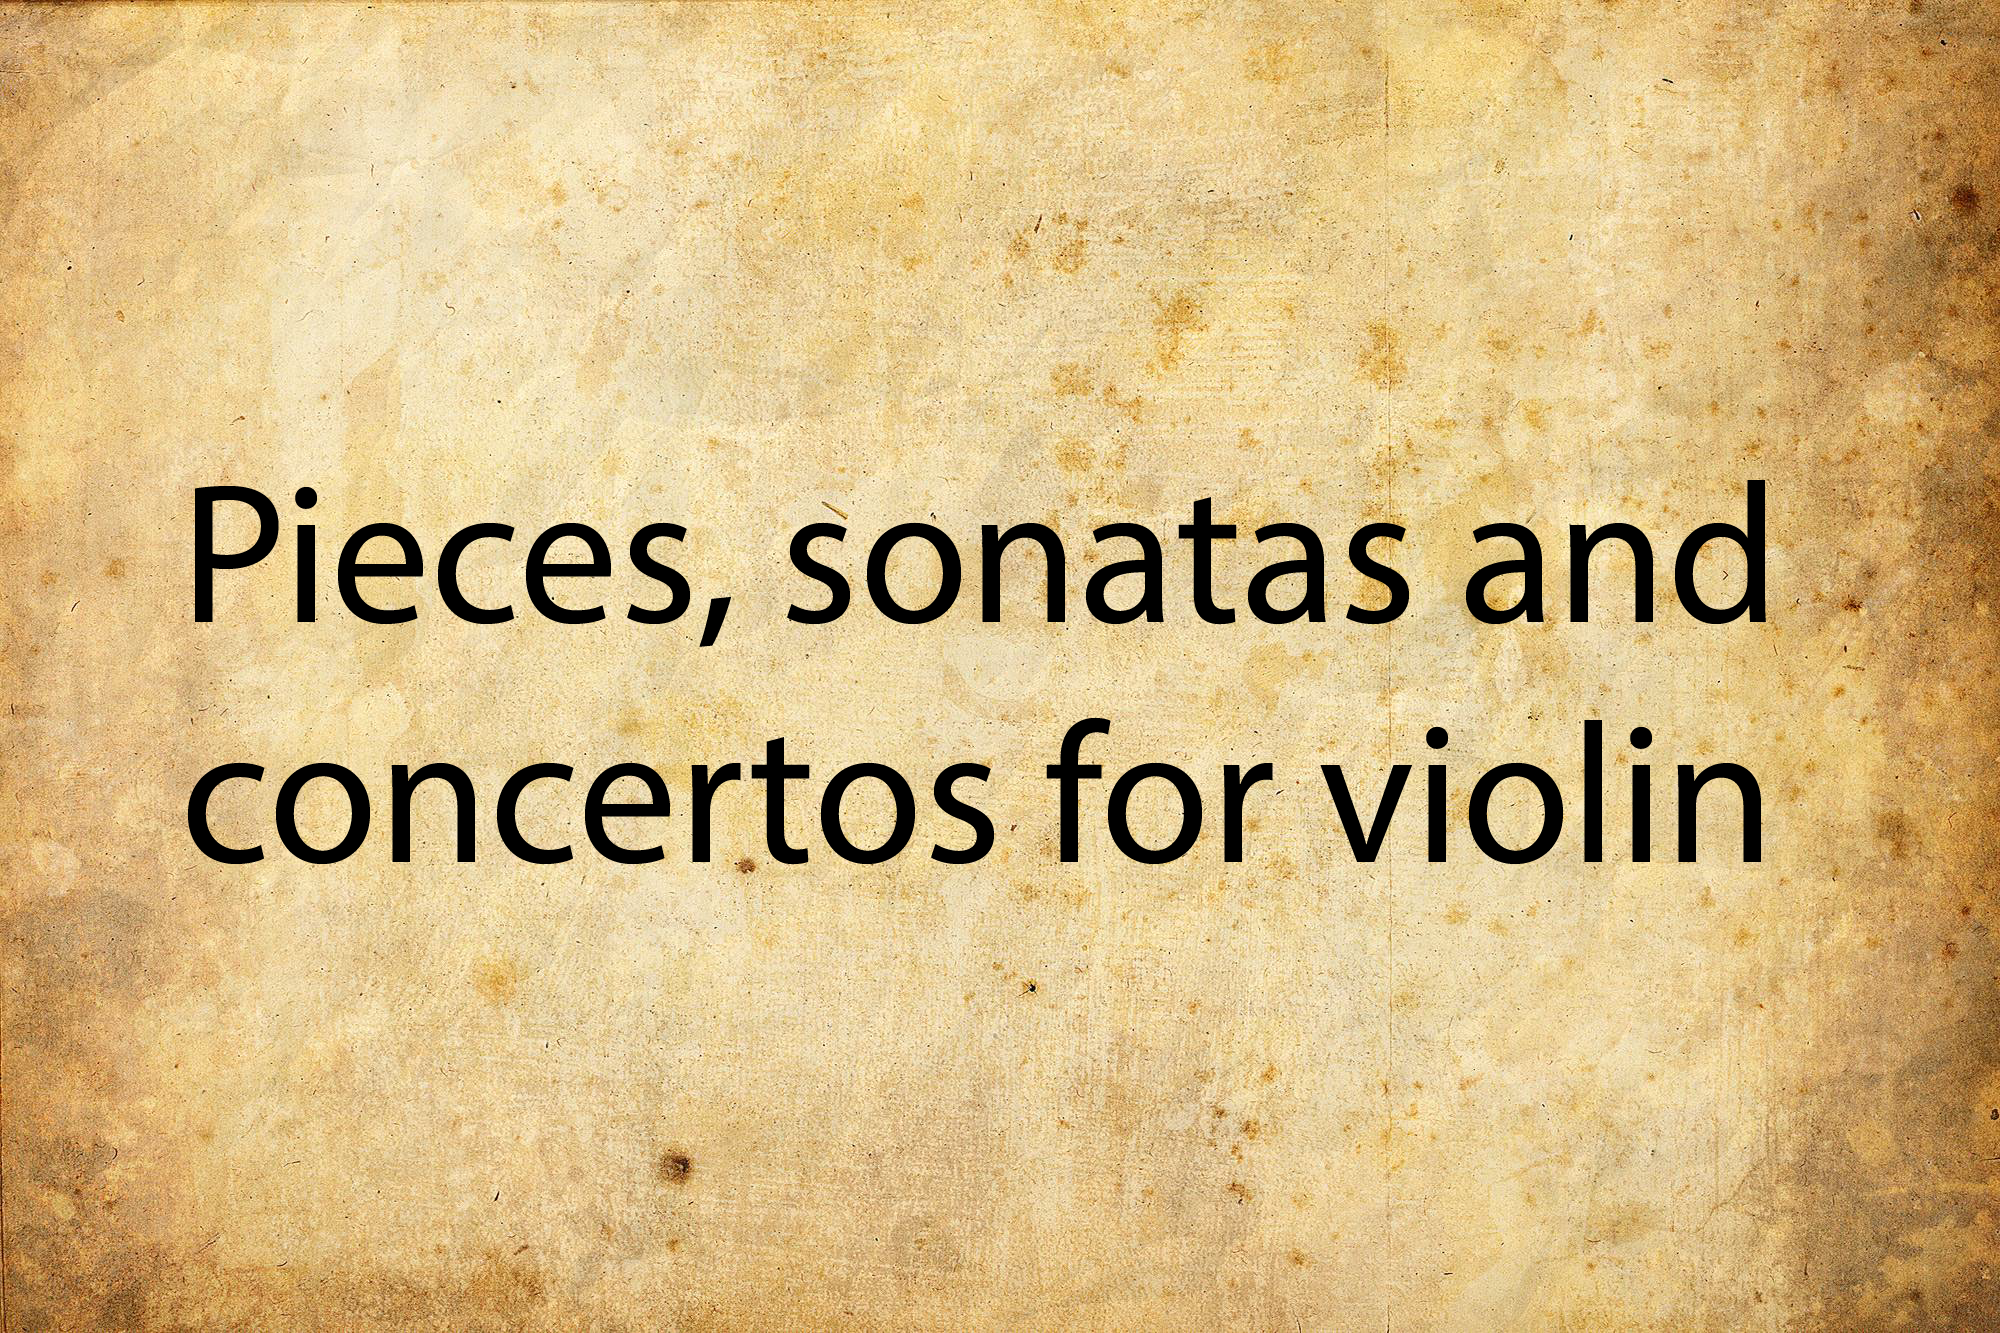 Pieces, sonatas and concertos for violin